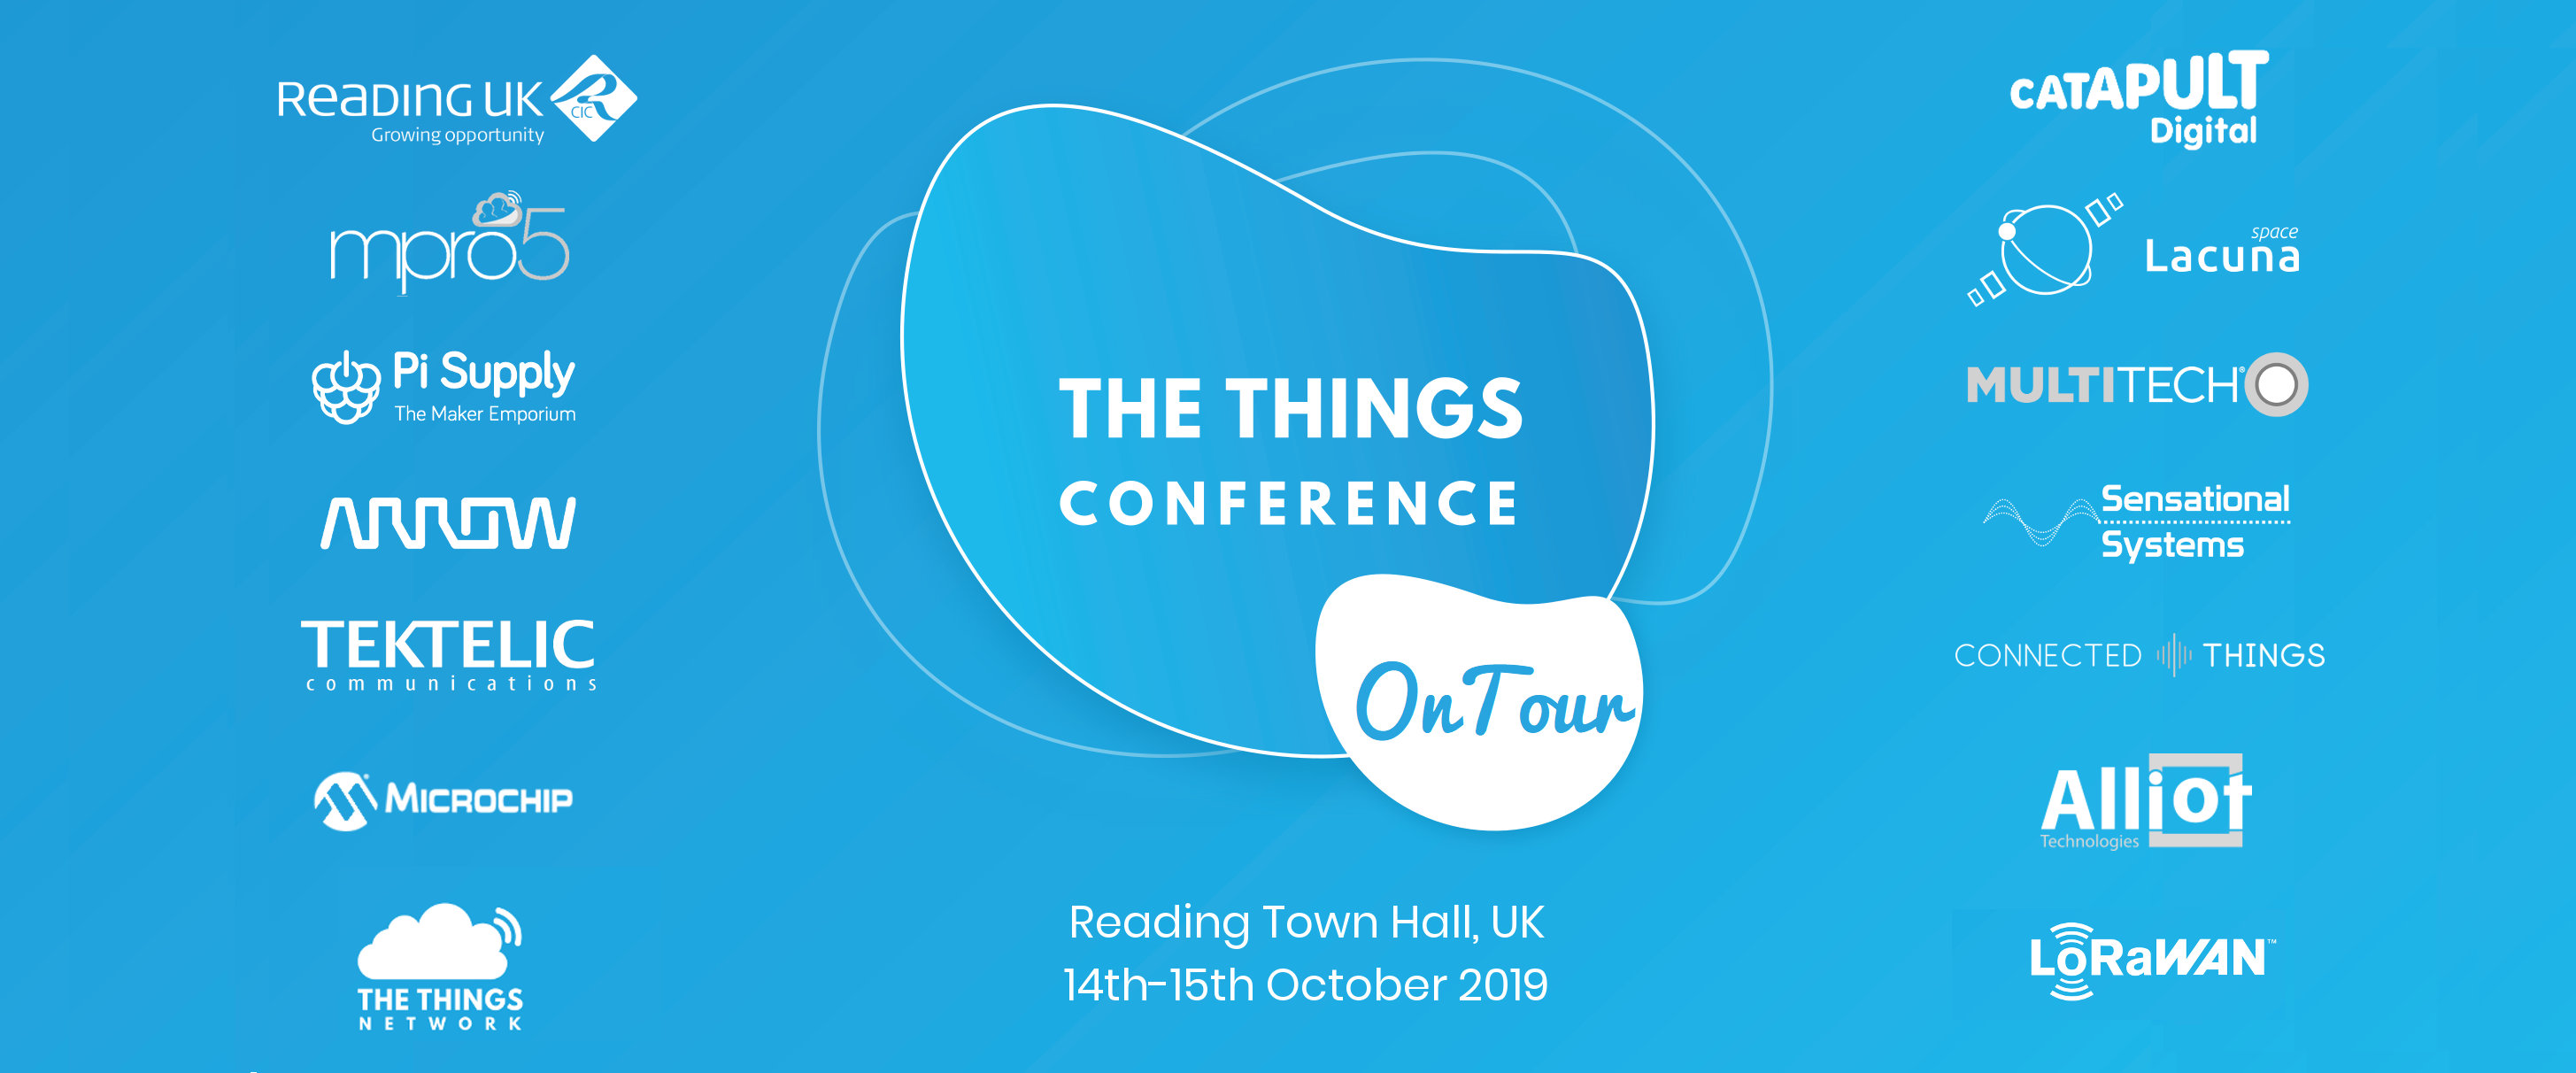 The_Things_Conference_on%20_Tour_banner_venue_date_sponsors_20190912a_wide